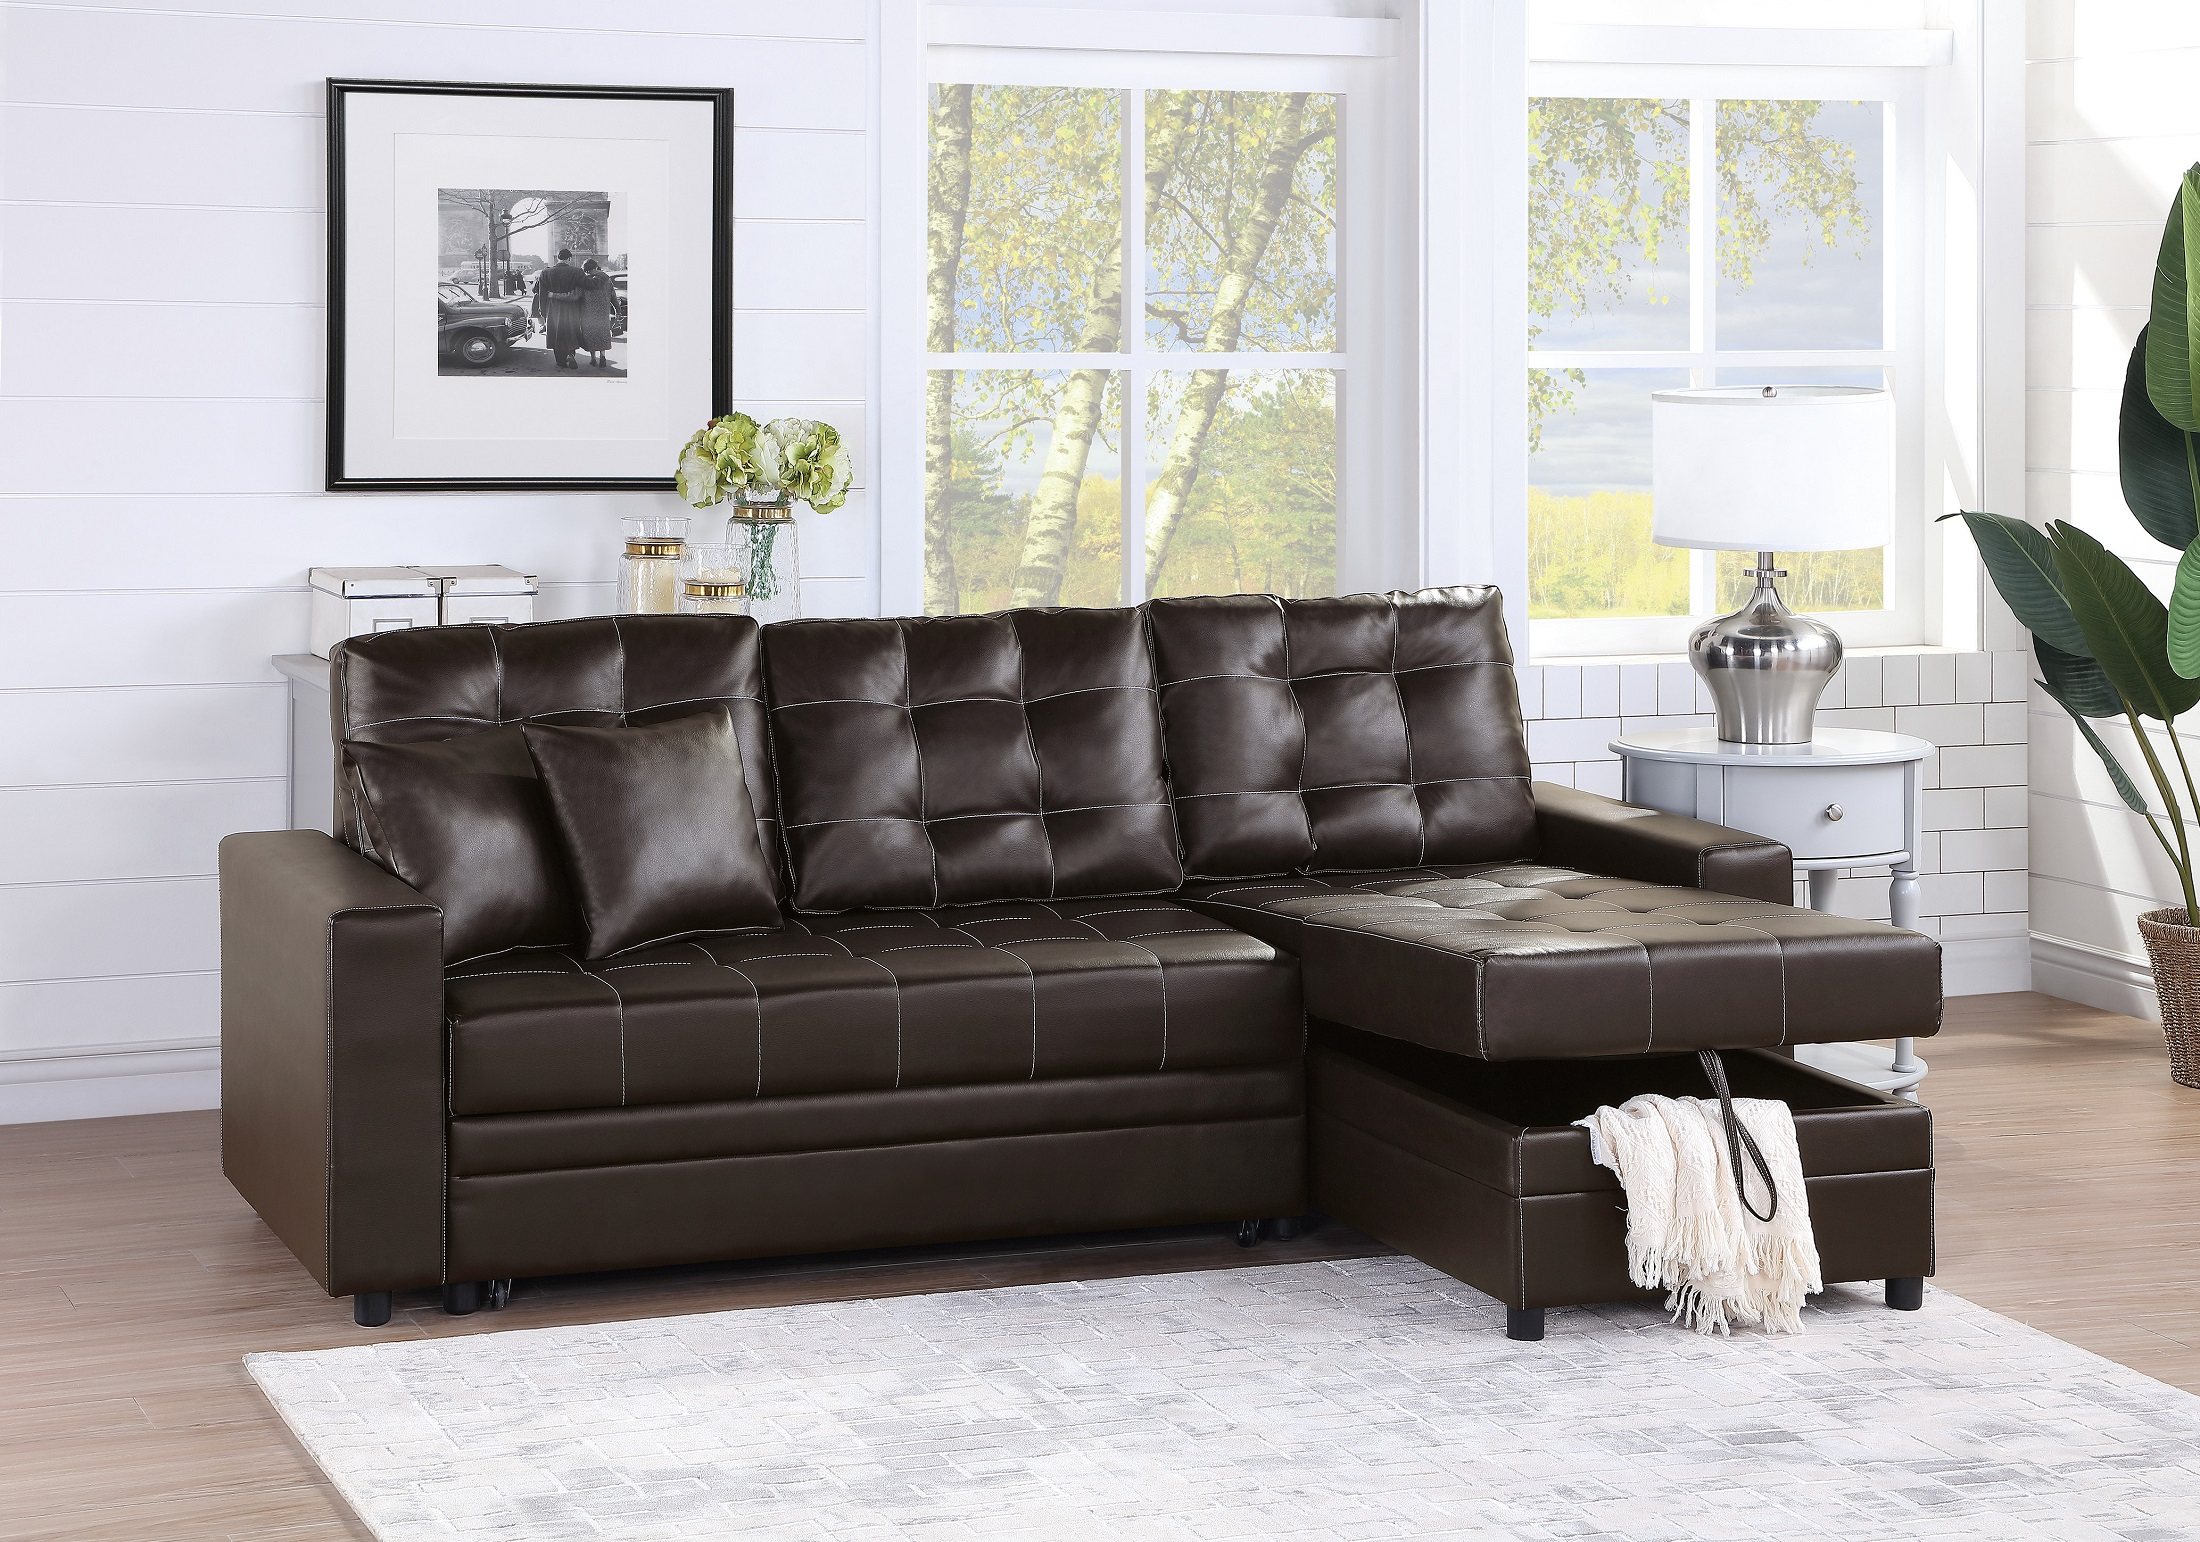 Convertible Sectional Sofa Set Living Room Furniture 2Pc Throughout 4Pc Crowningshield Contemporary Chaise Sectional Sofas (View 2 of 15)